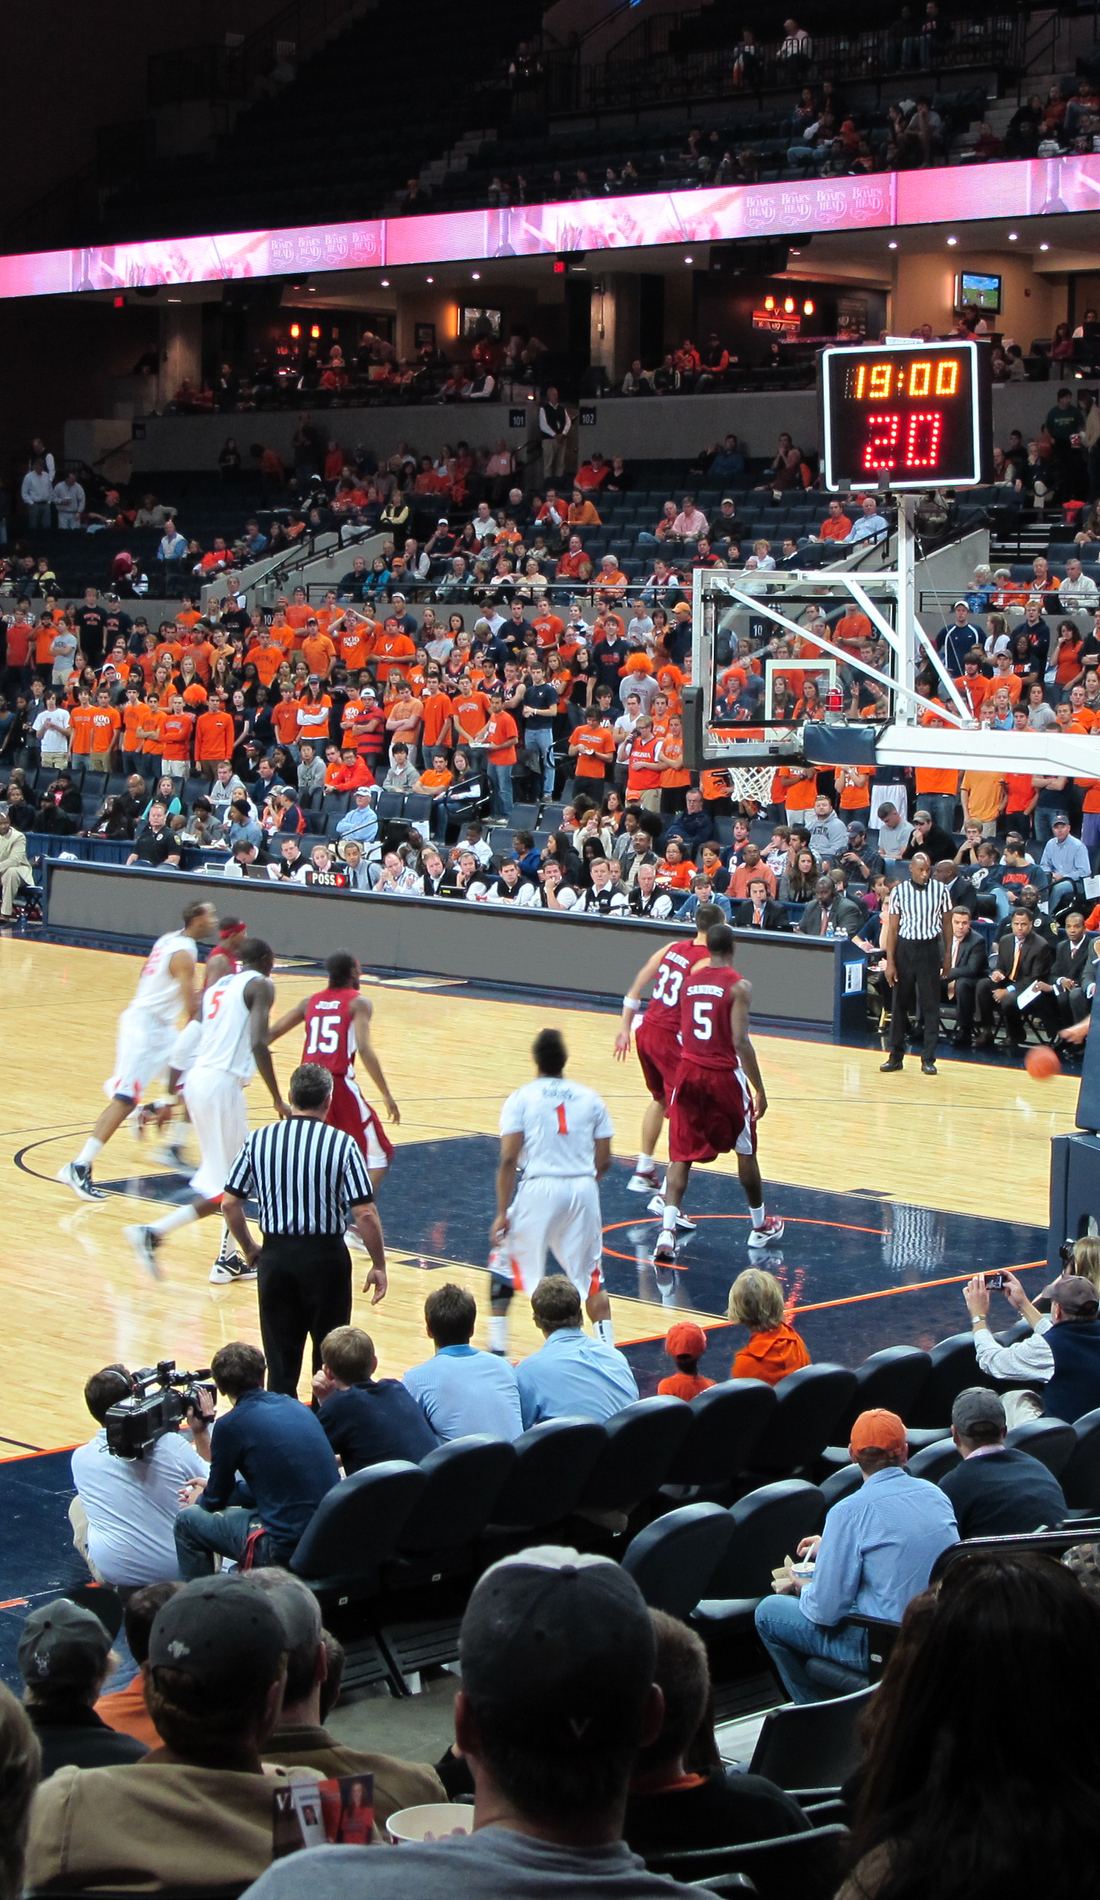 A Virginia Cavaliers Basketball live event